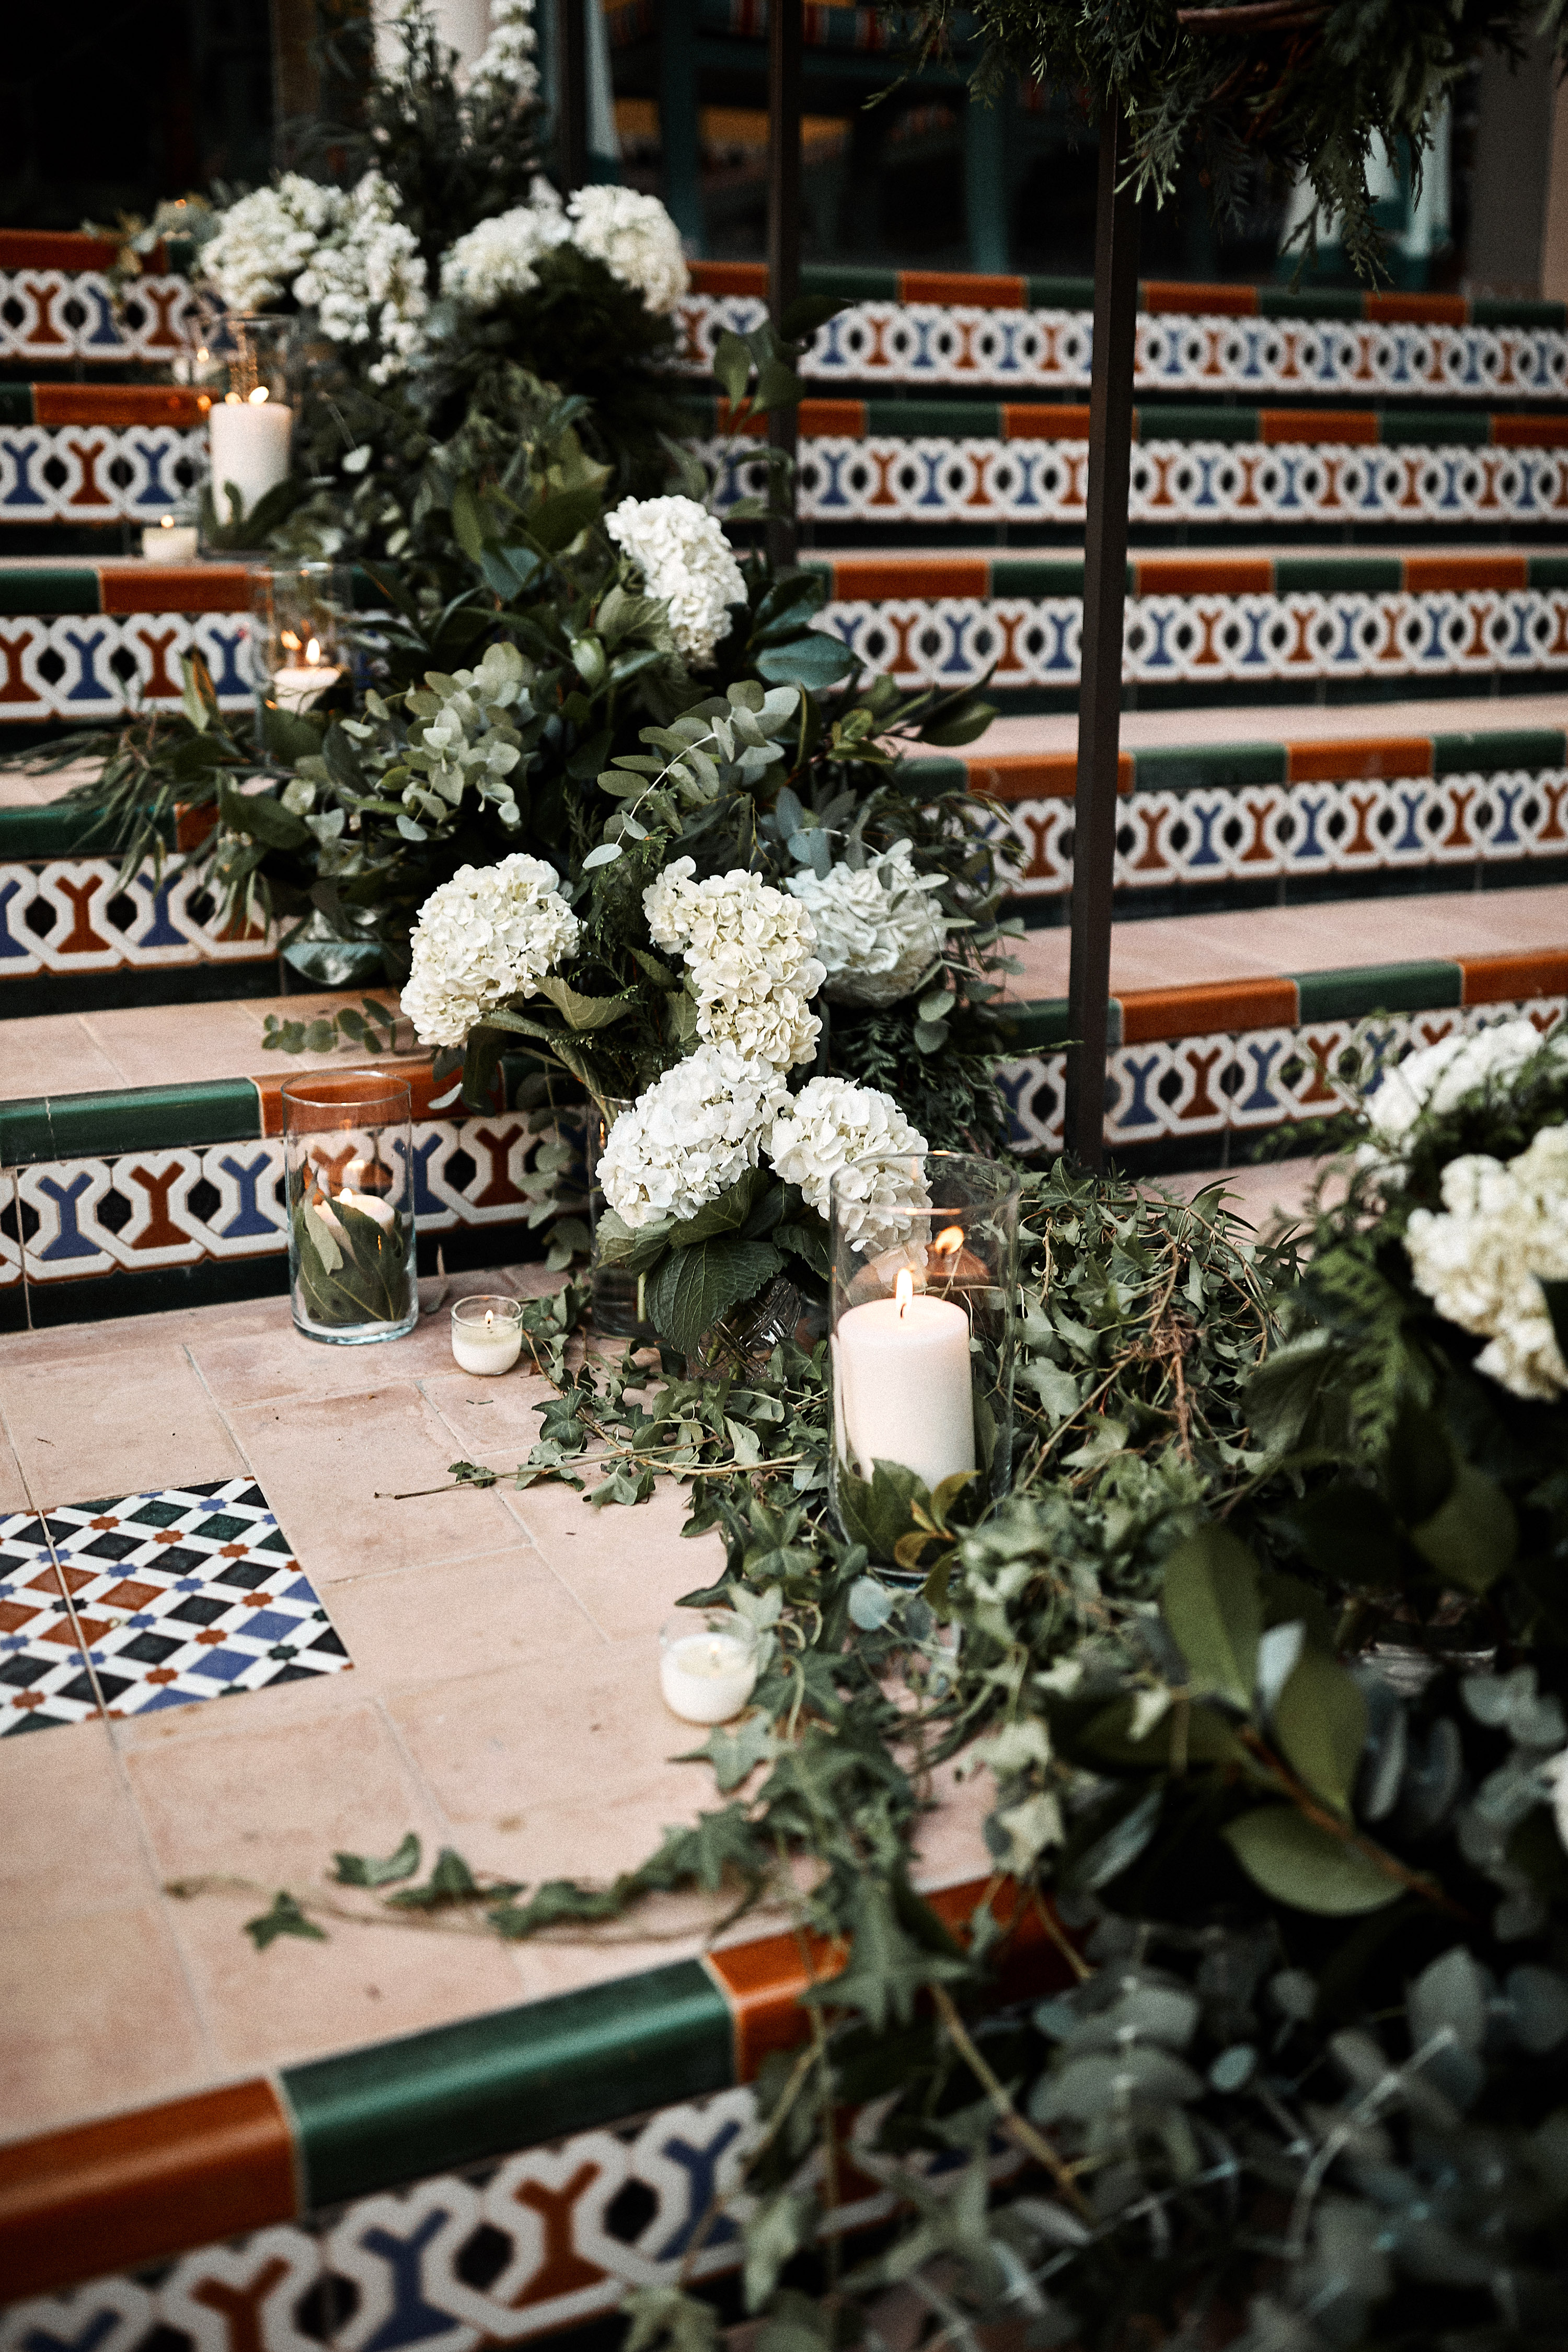 karolina sorab wedding flower arrangement on stairs